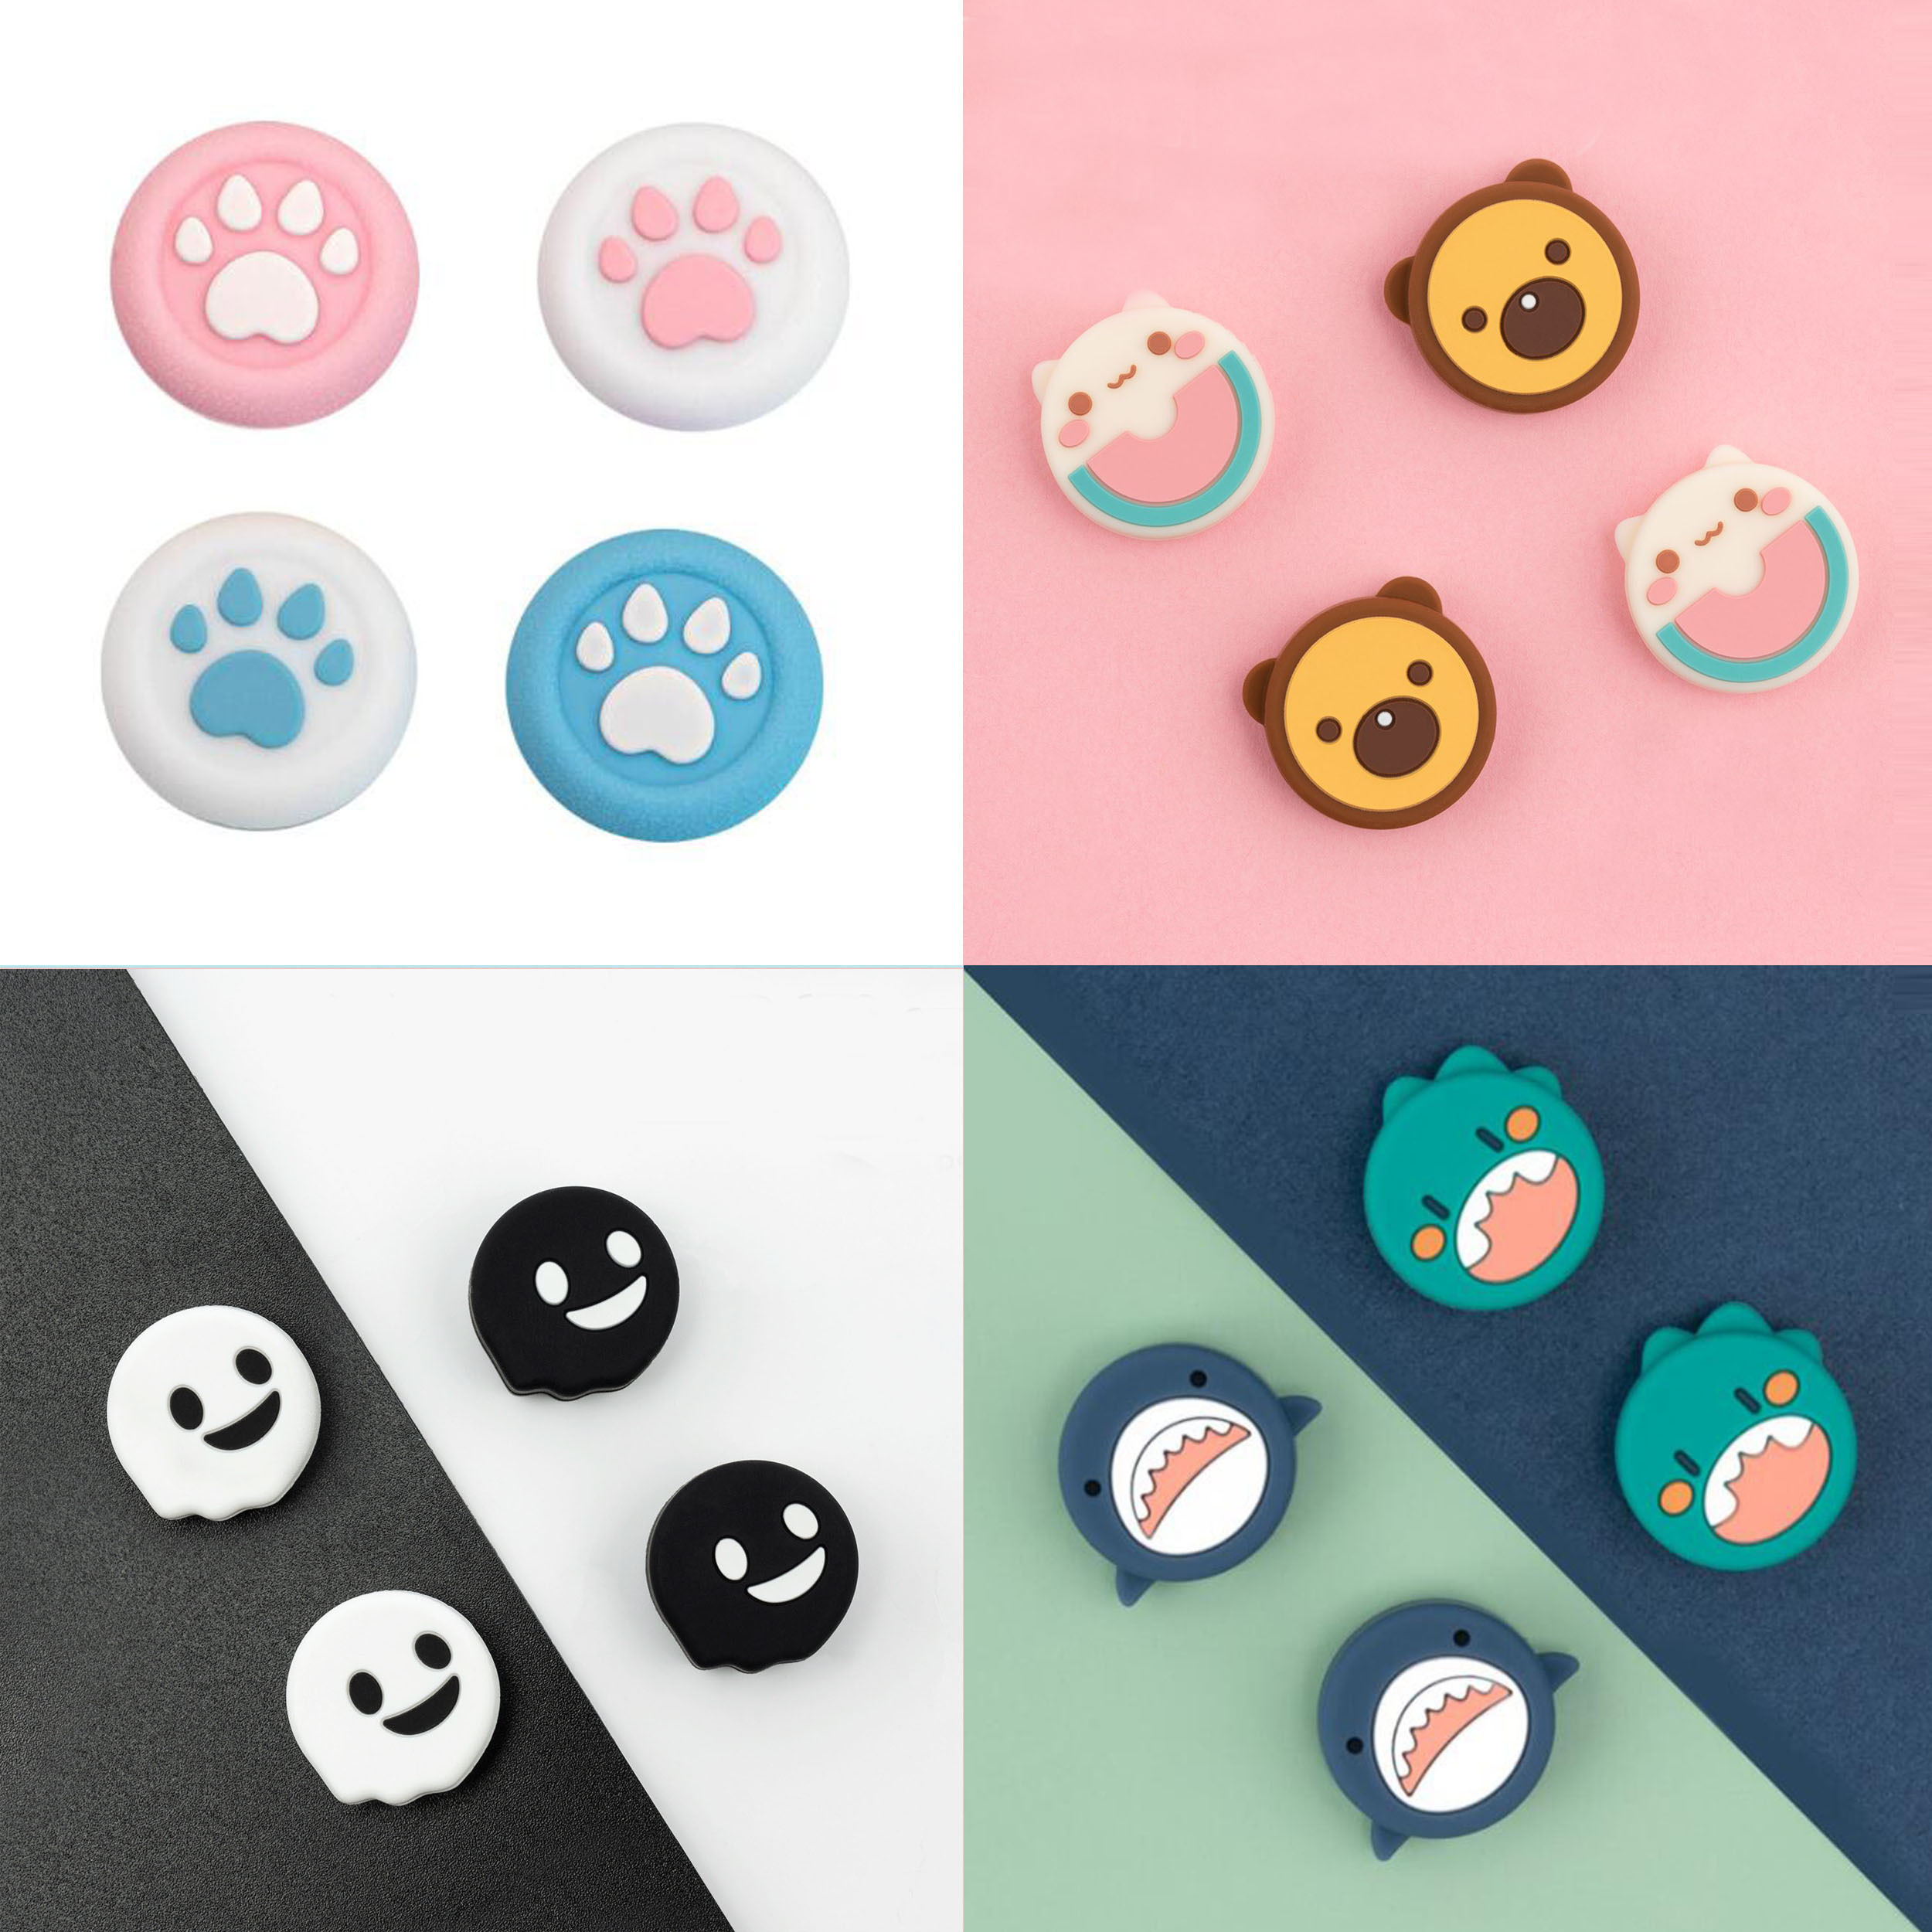 Cat Paw Sakura Thumb Stick Grip Cap Joystick Cover For Sony Playstation Dualshock 4/3 PS5/PS4/PS3/Xbox 360/Switch Pro Controller